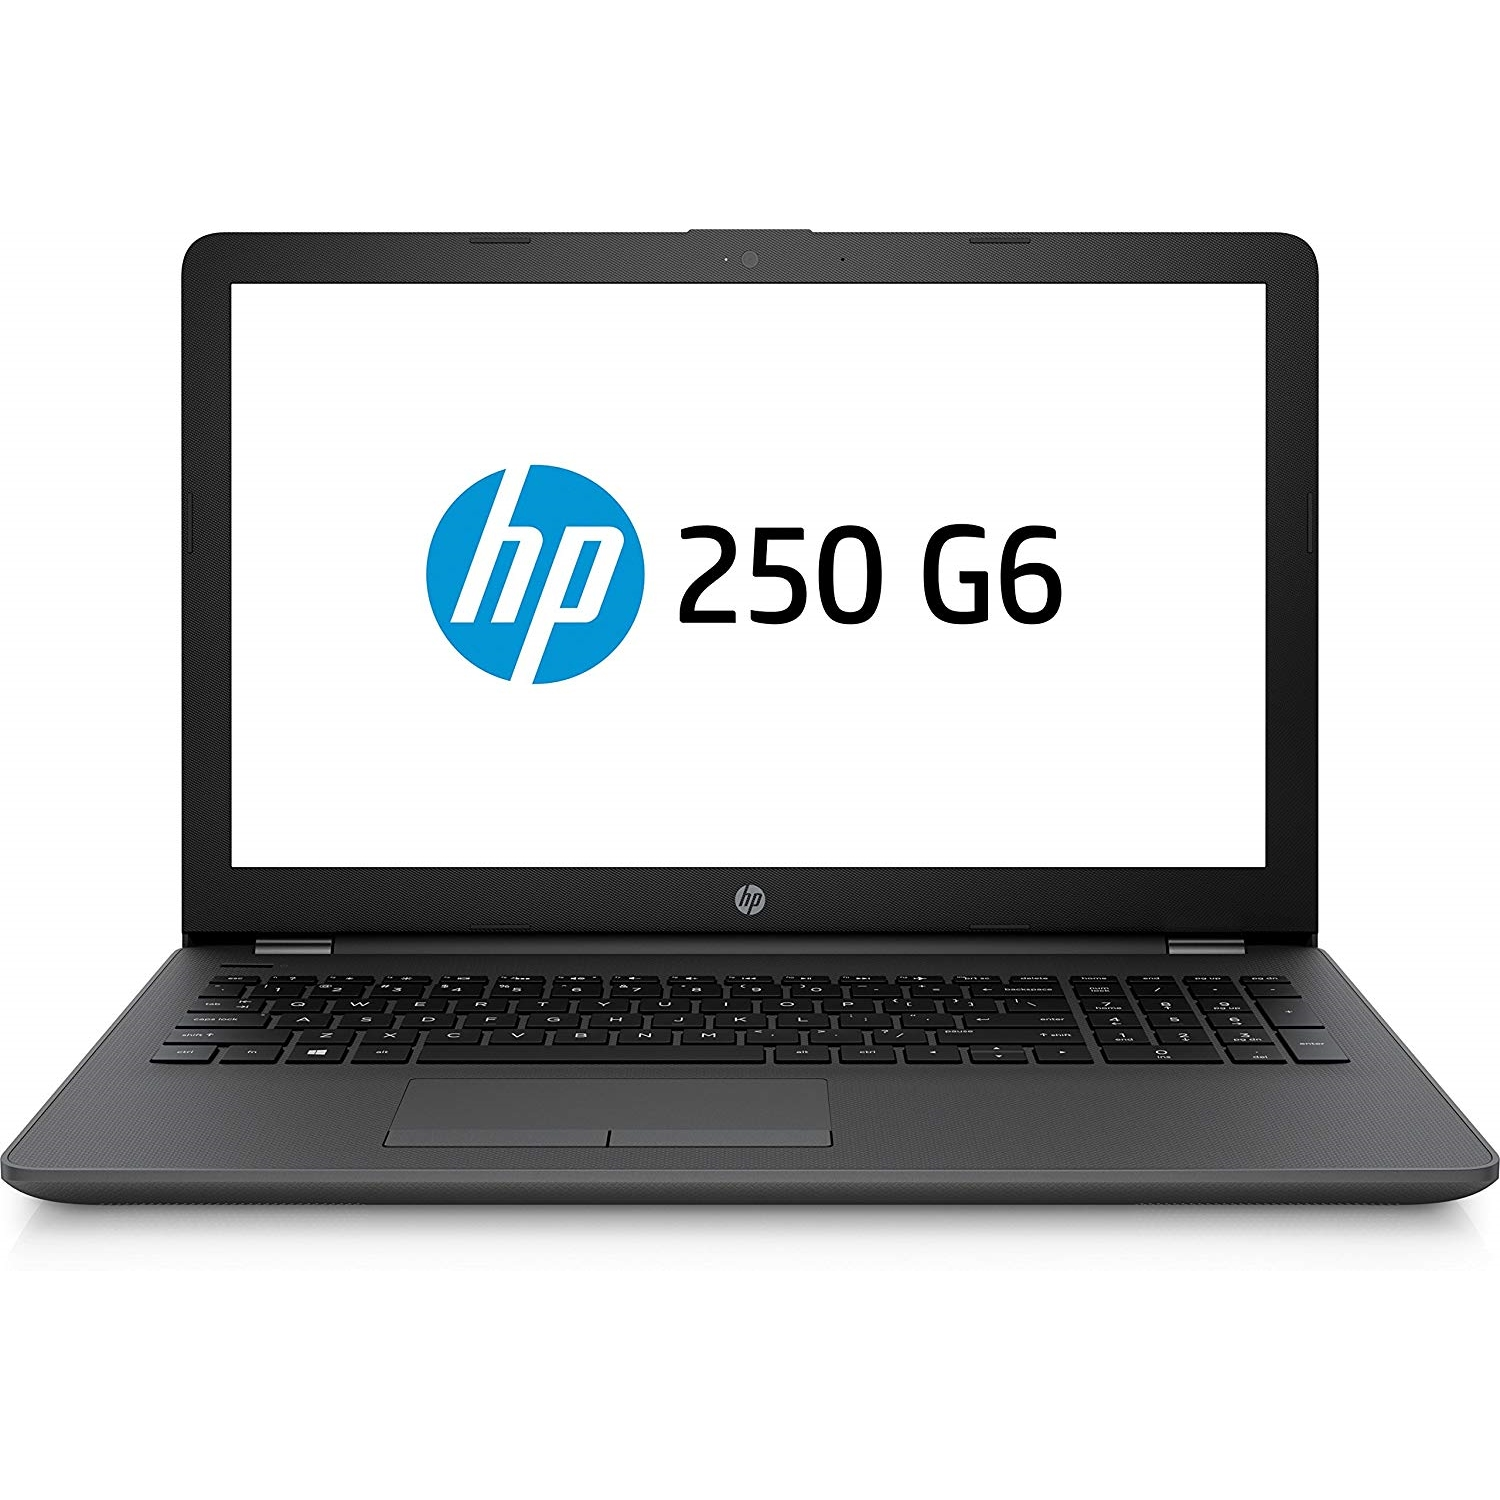 "HP 250 G6 2XZ24ES I3-5005U 4GB 500GB O/B VGA 15.6"" FREEDOS NOTEBOOK"